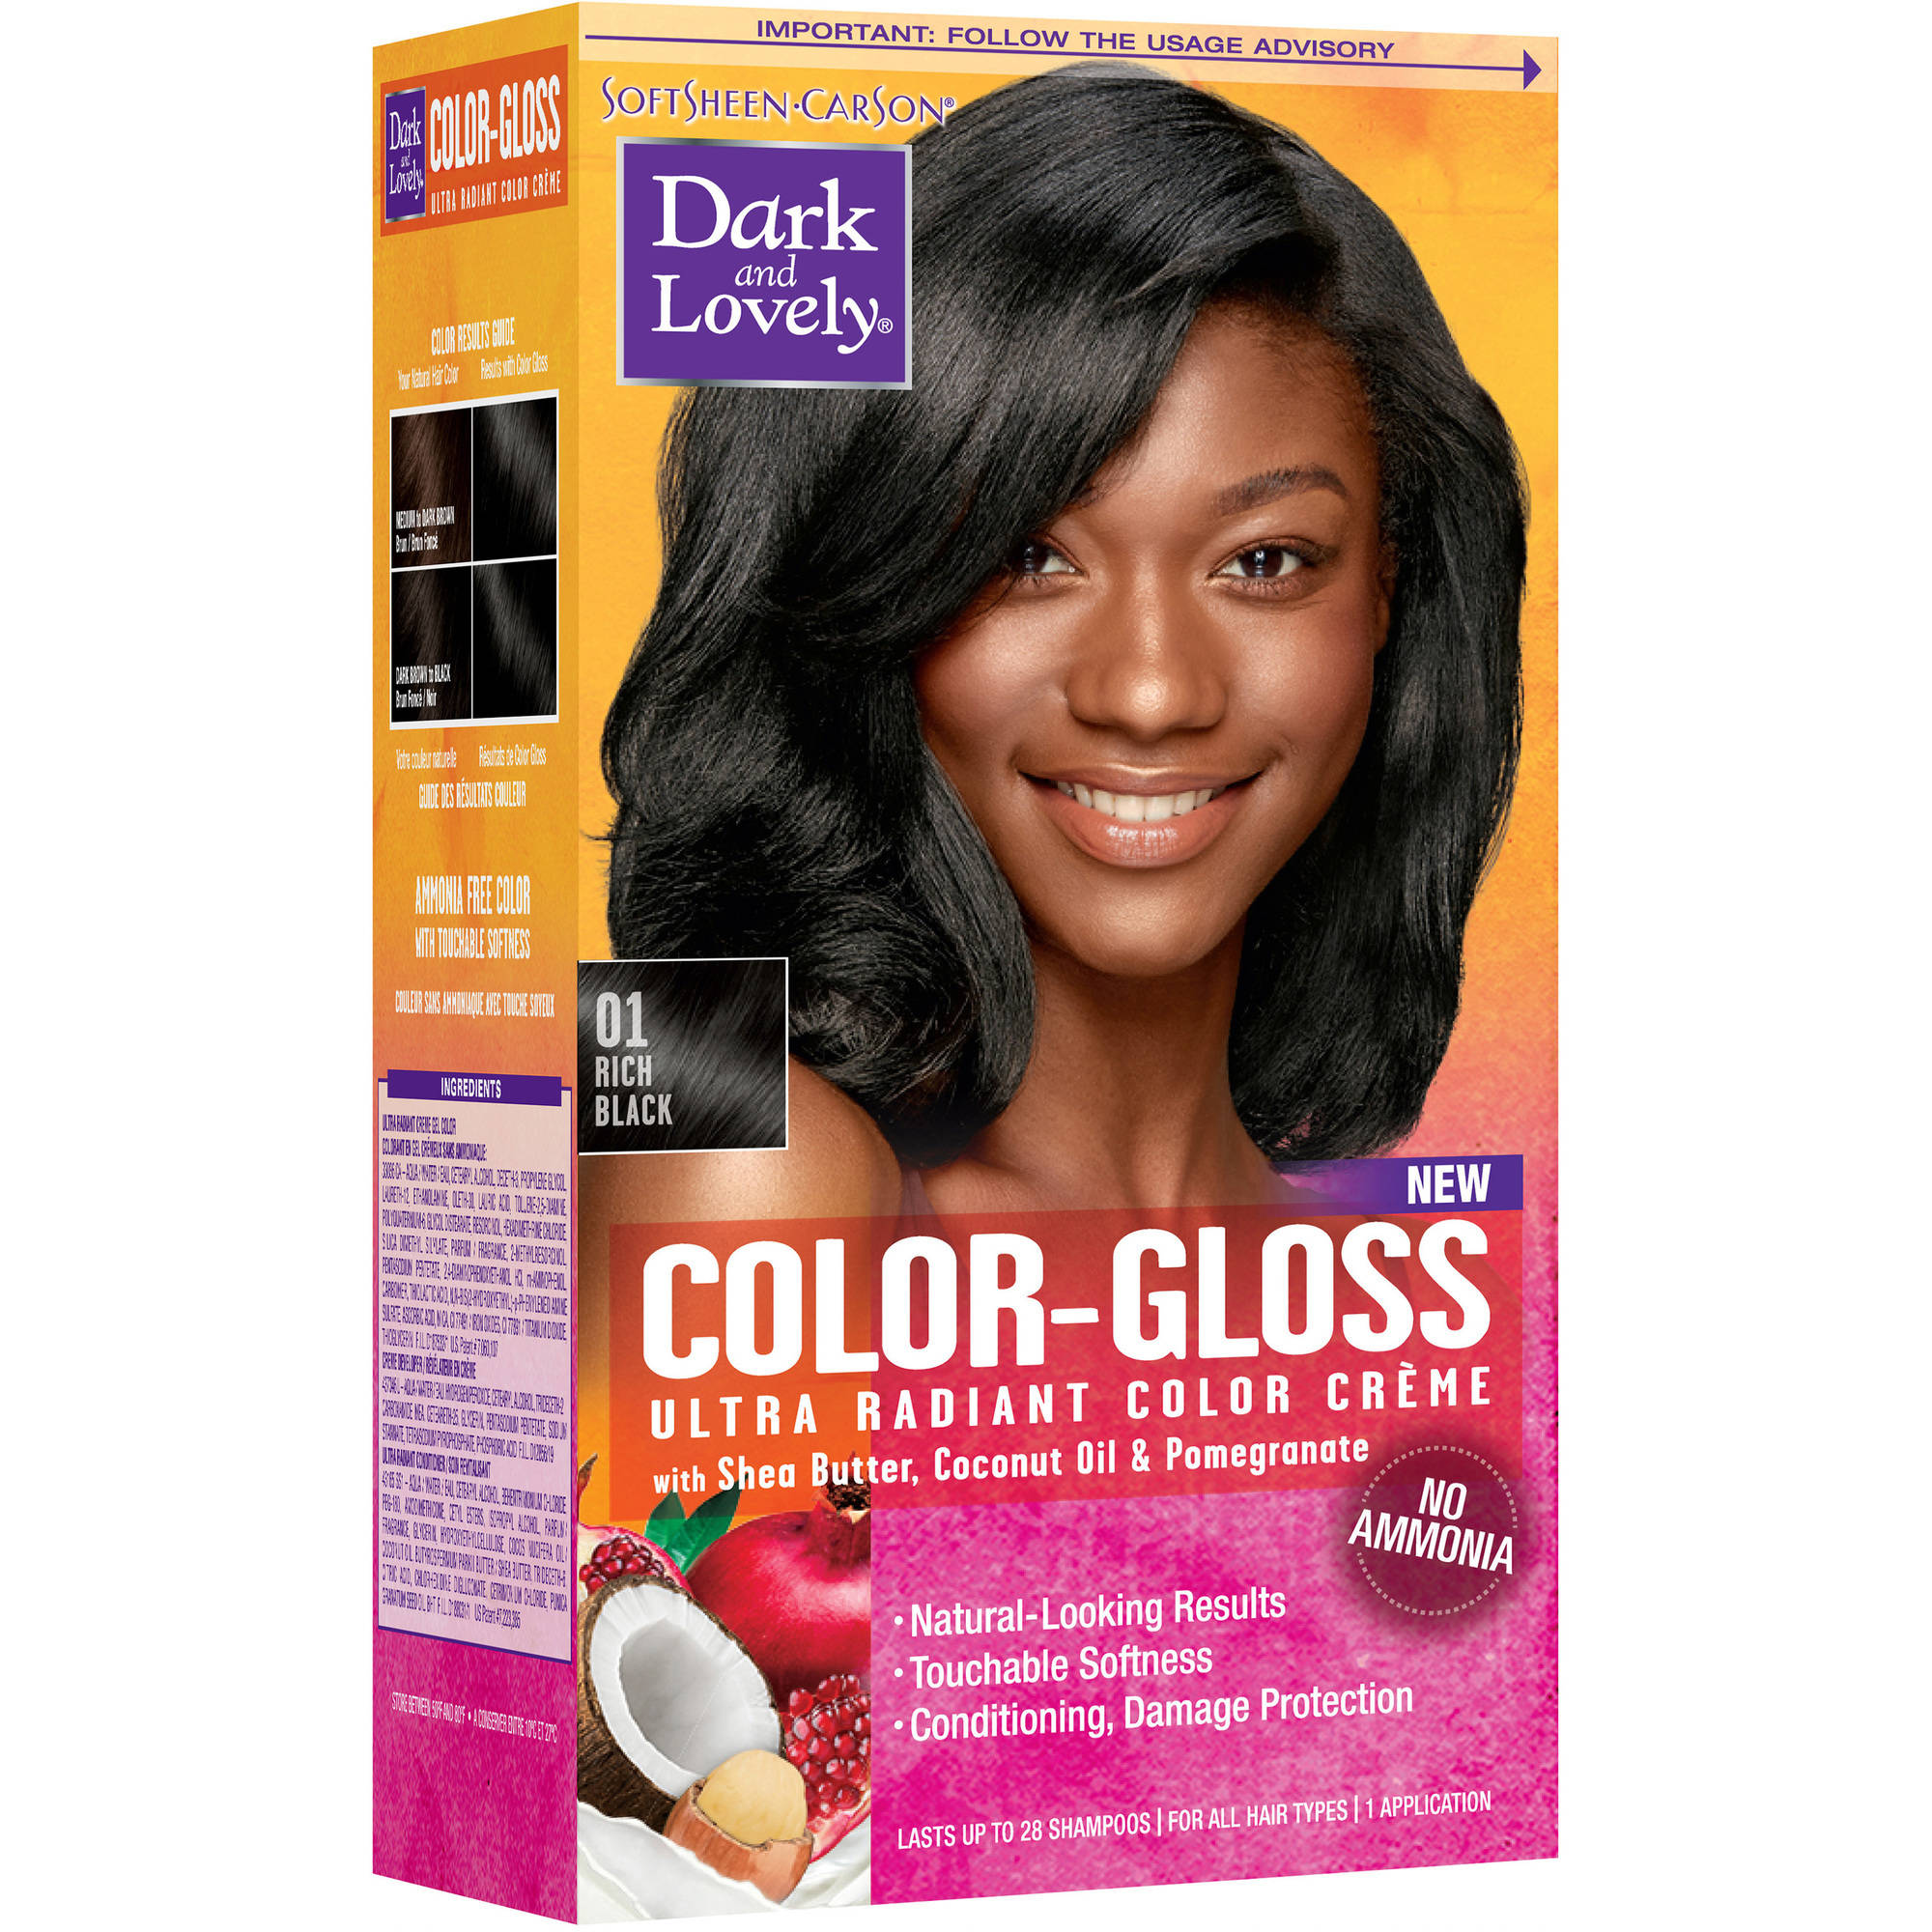 Softsheen Carson Dark And Lovely Color Gloss Ultra Radiant Color